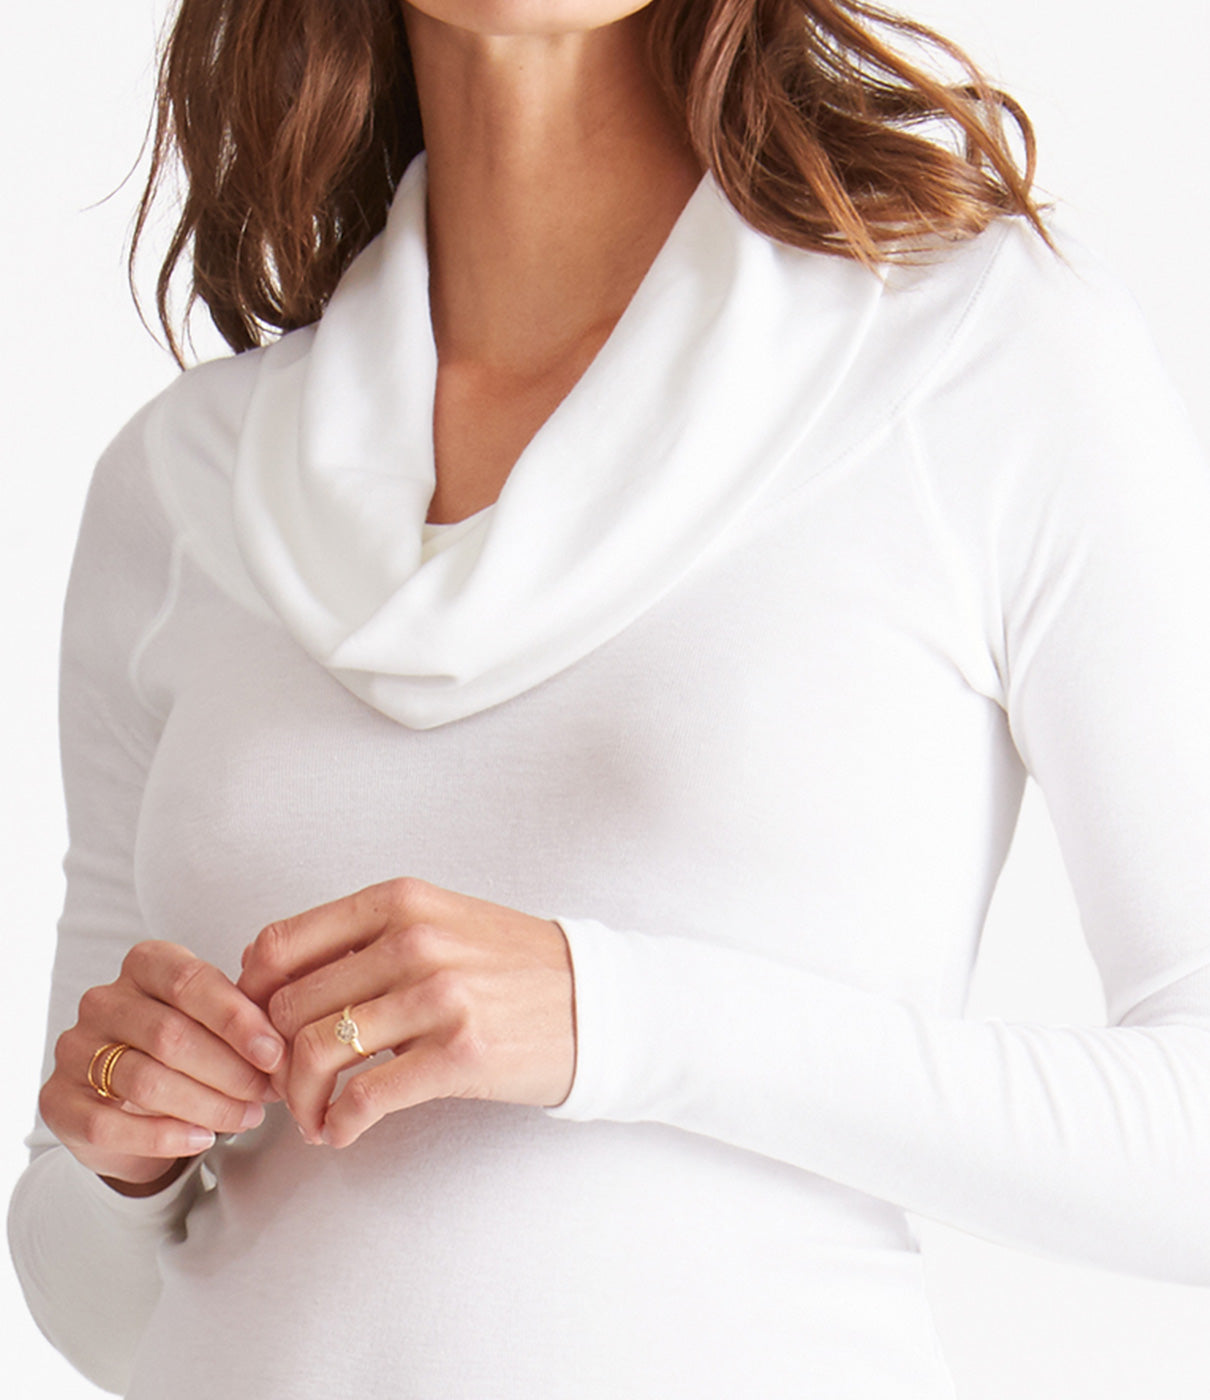 What It's Made OfButtery soft supima cotton and micromodal blend for maximum comfort.